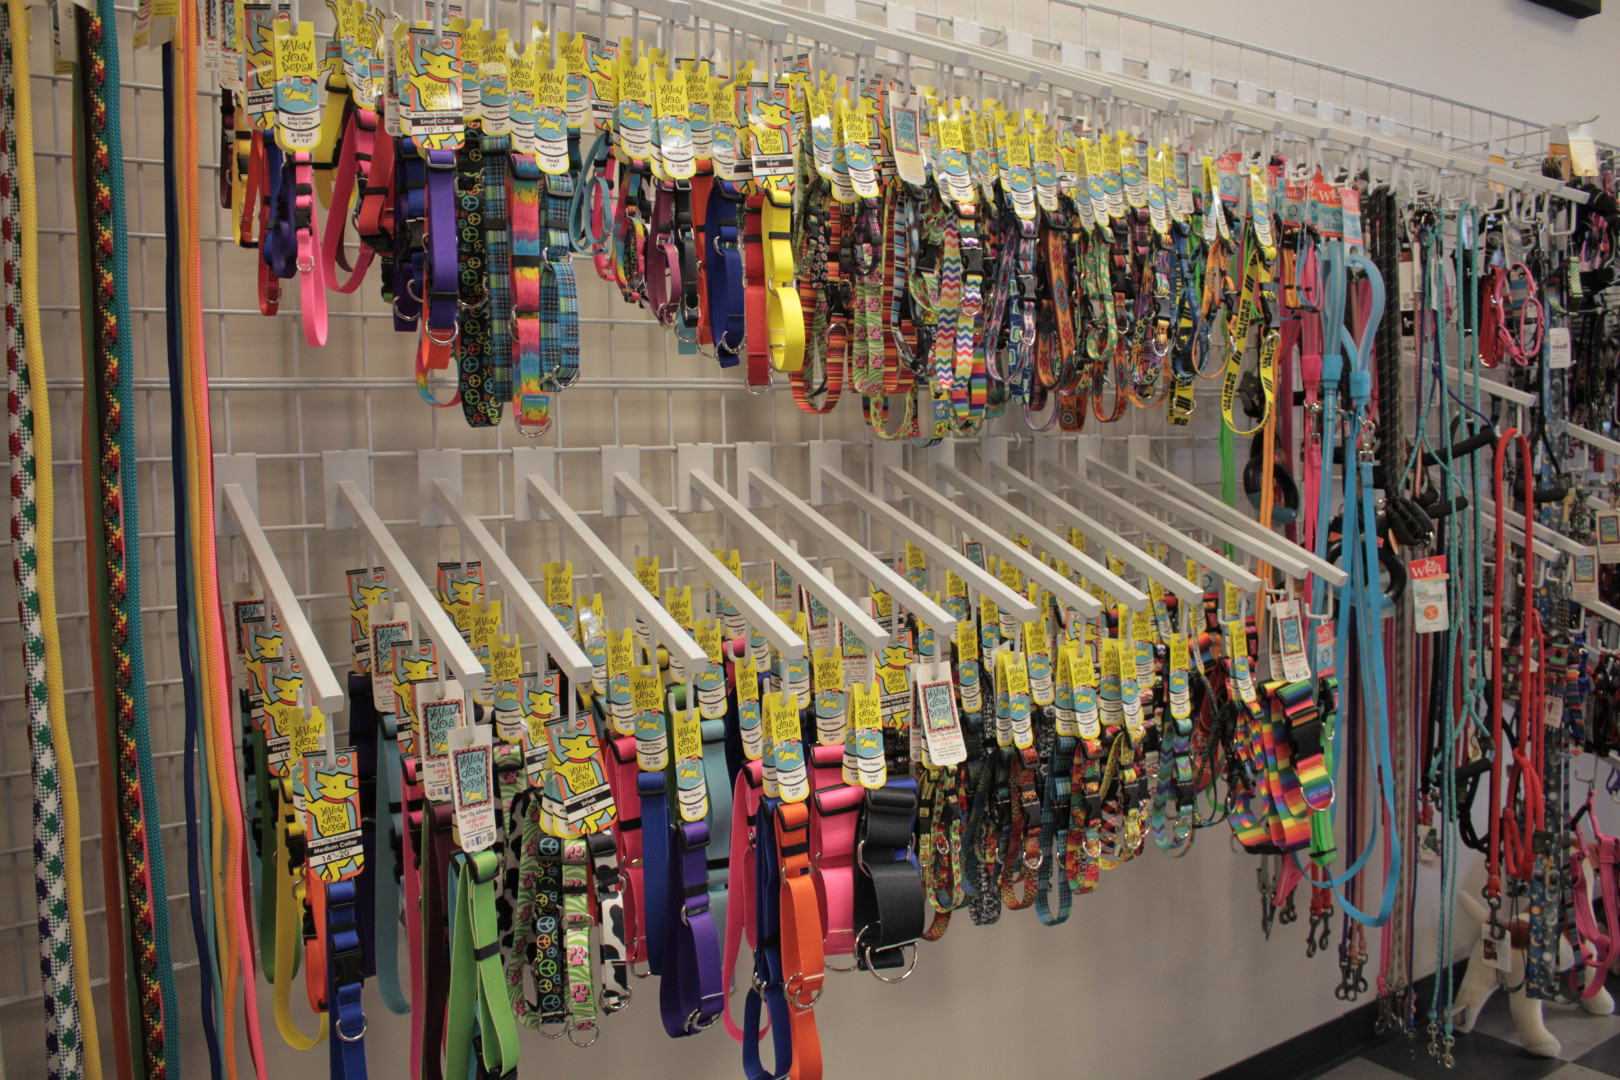 We stock a wide variety of fun and functional collars, leashes, and harnesses.